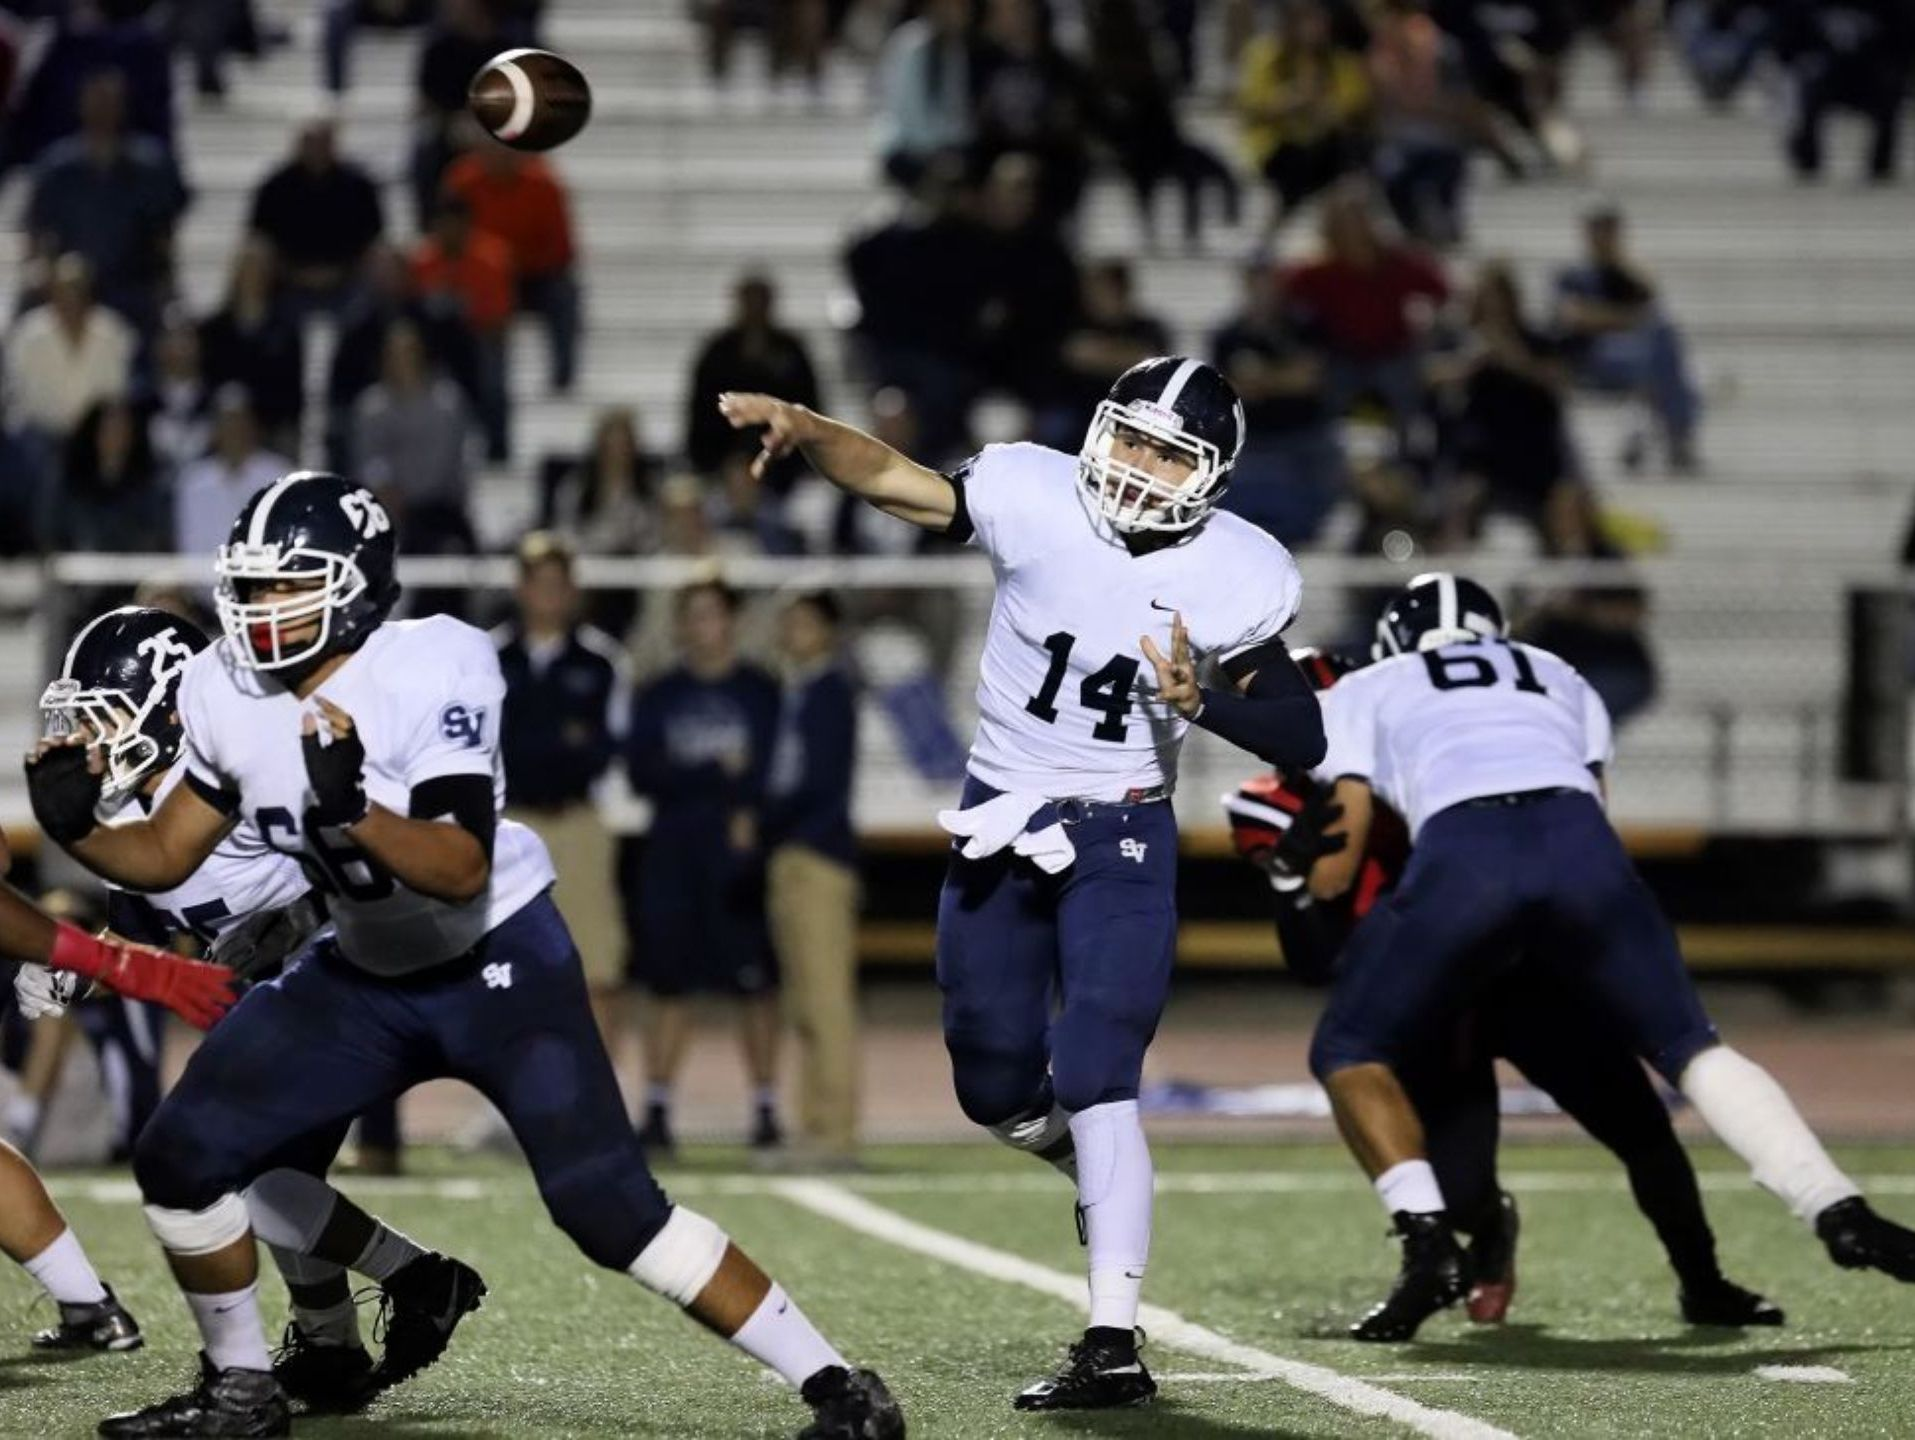 Smithson Valley quarterback Josh Adkins, passing against Stevens last week, has completed 167 of 246 attempts with six interceptions for 2,556 yards and 26 touchdowns this season.